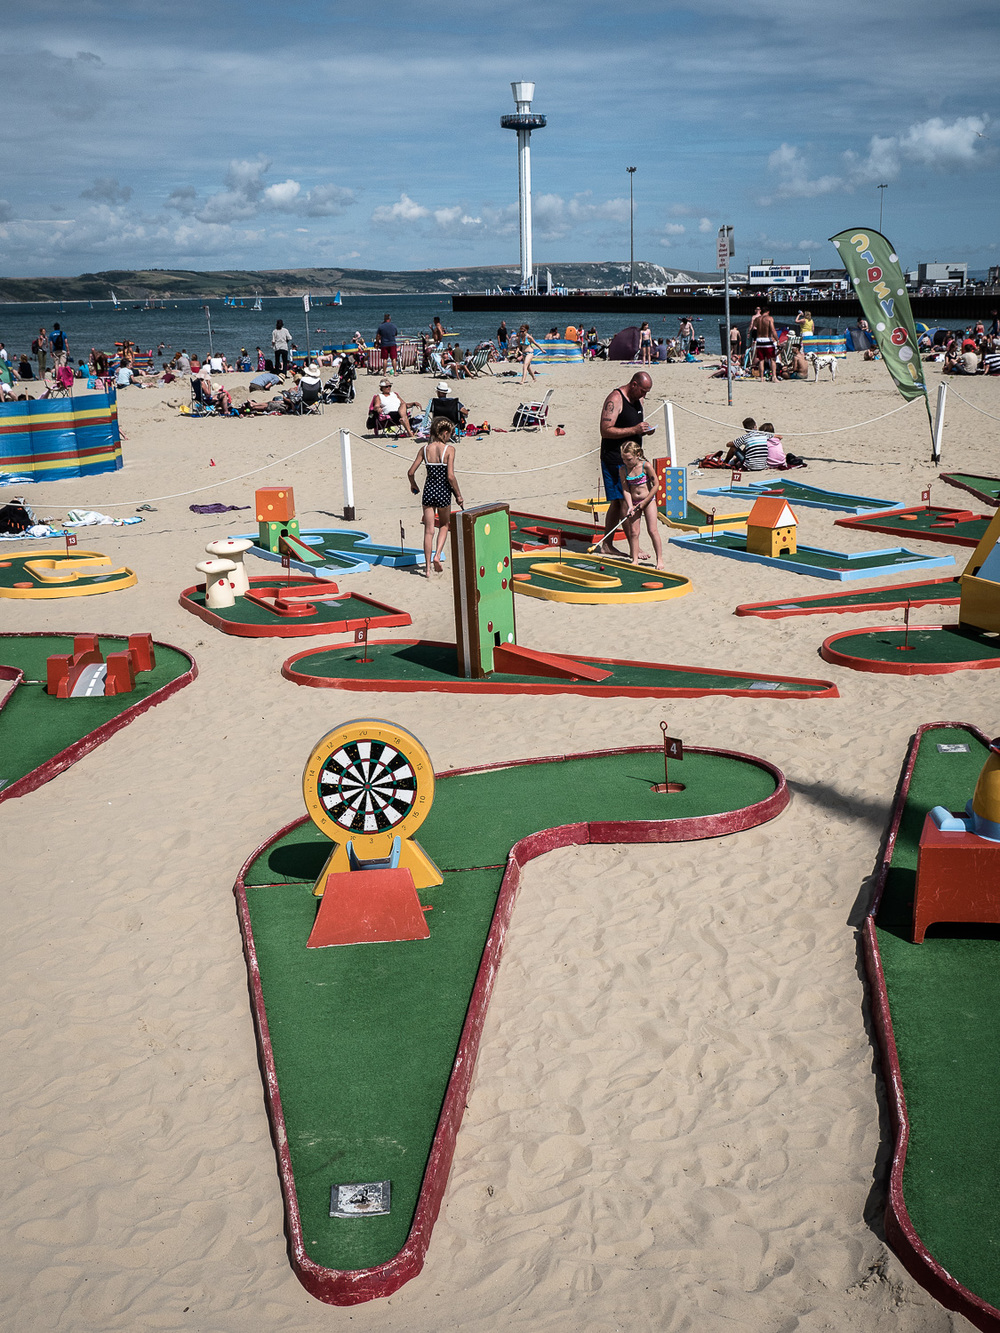 Minigolf on the beach?